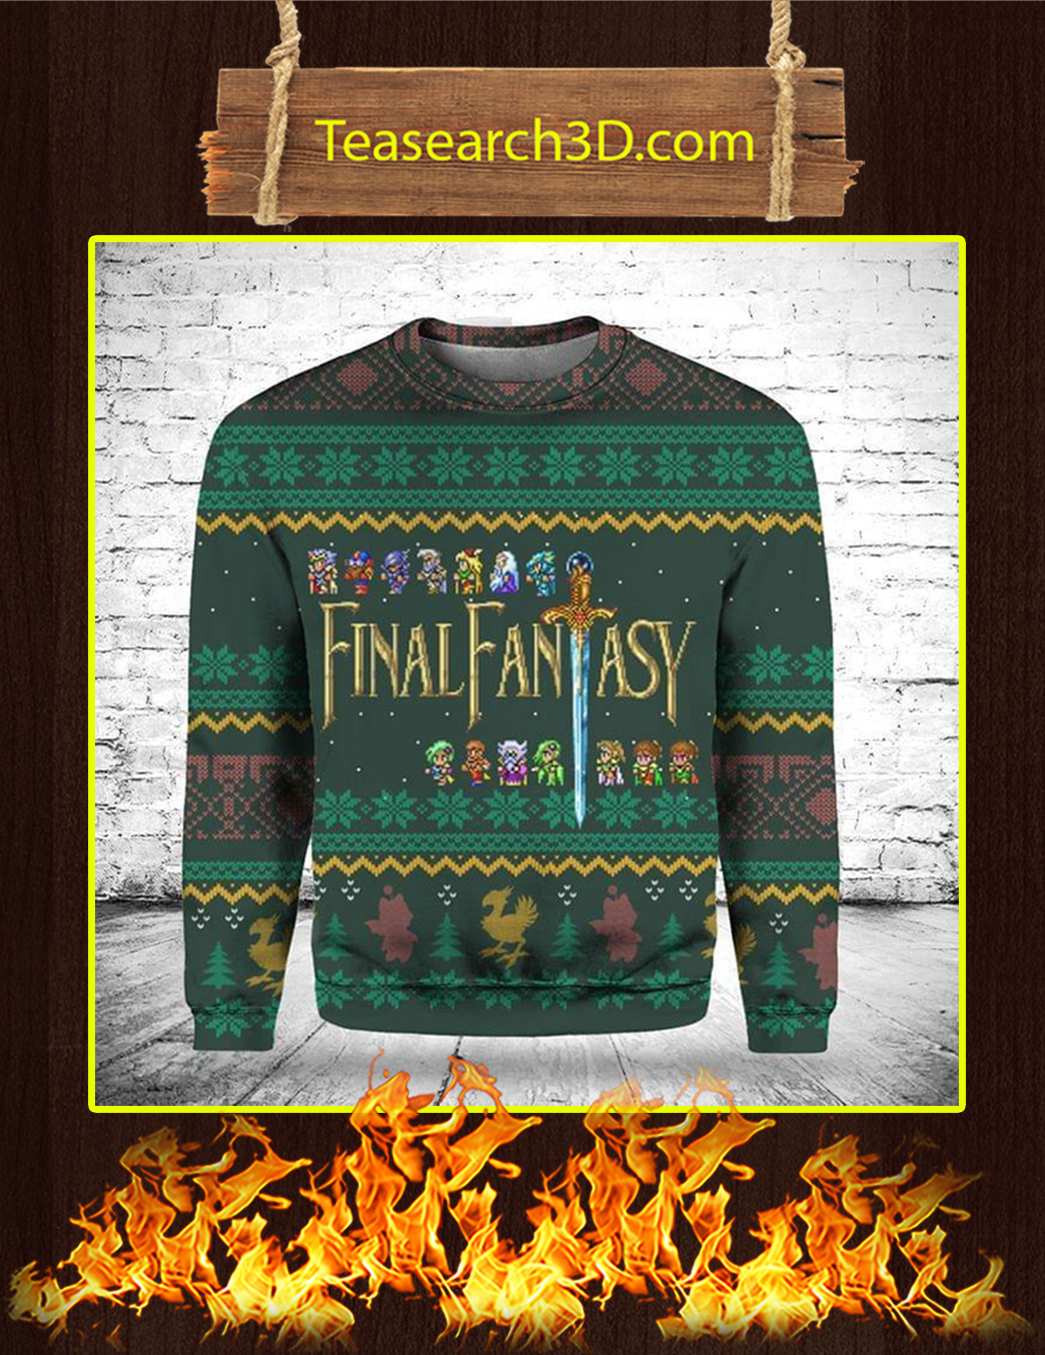 Final Fantasy 3D Ugly Christmas Sweater - M